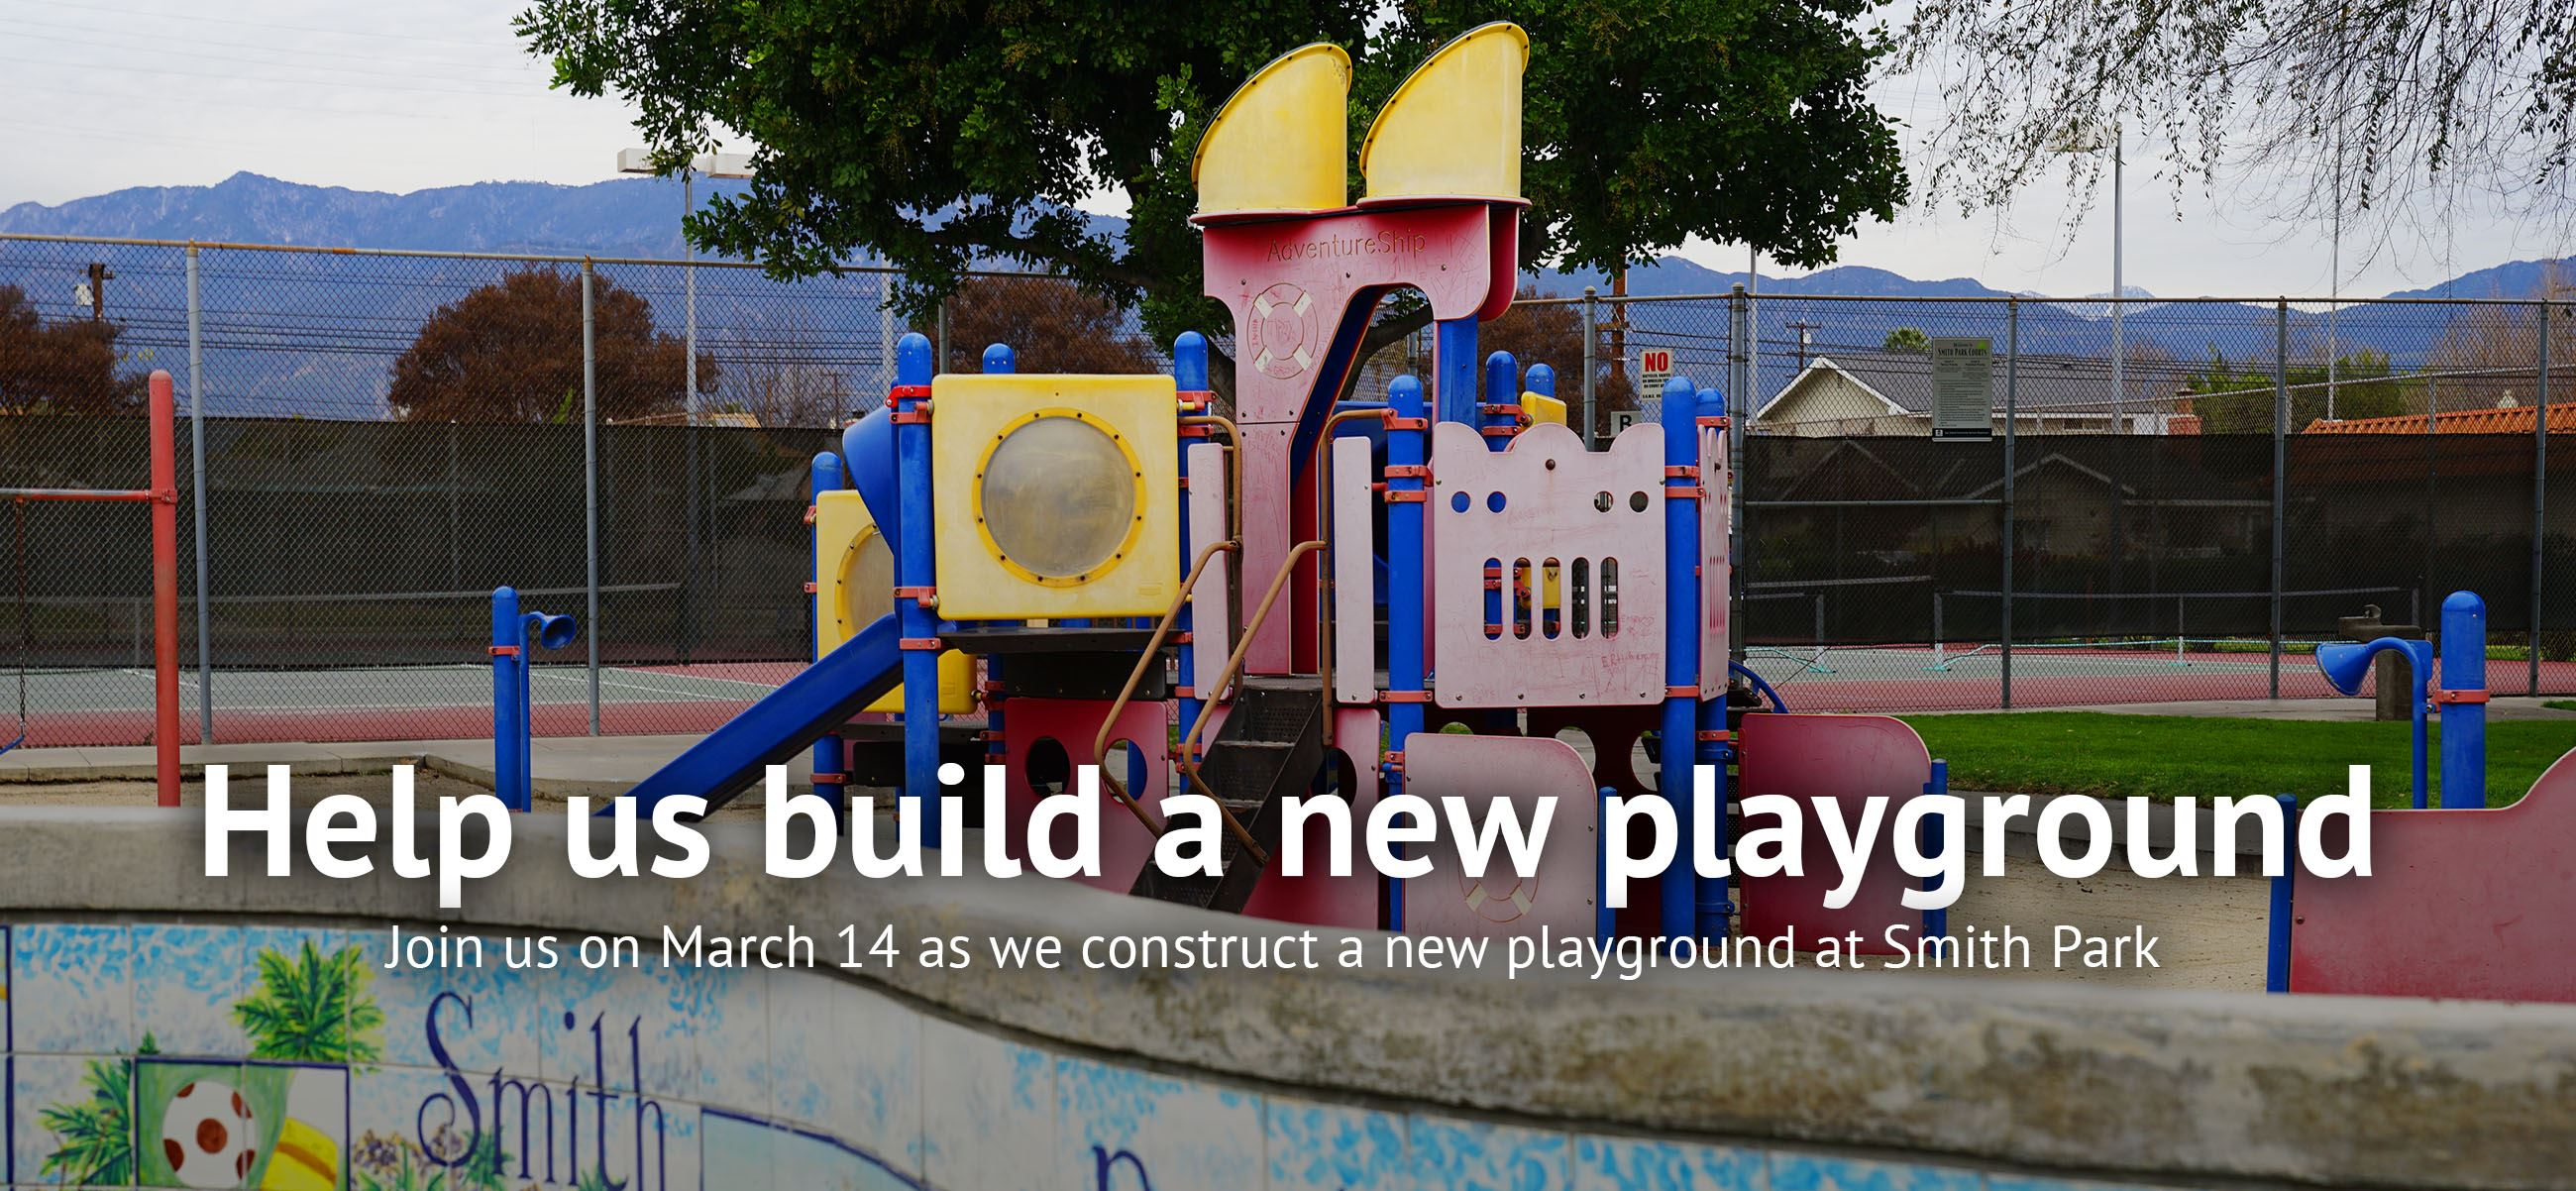 Help us build a new playground